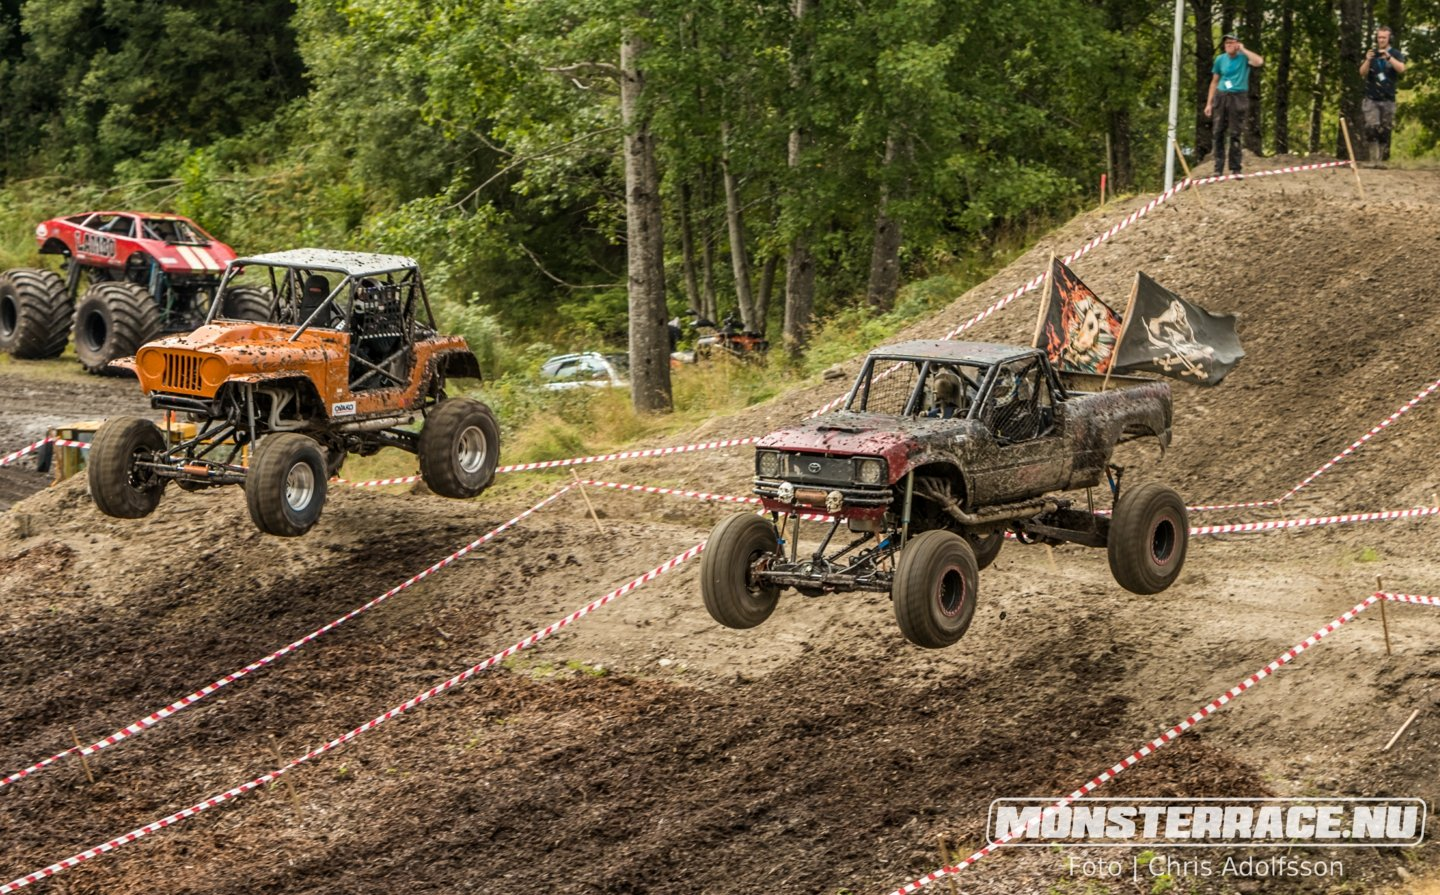 Monsterrace Ed dag 1 (160)